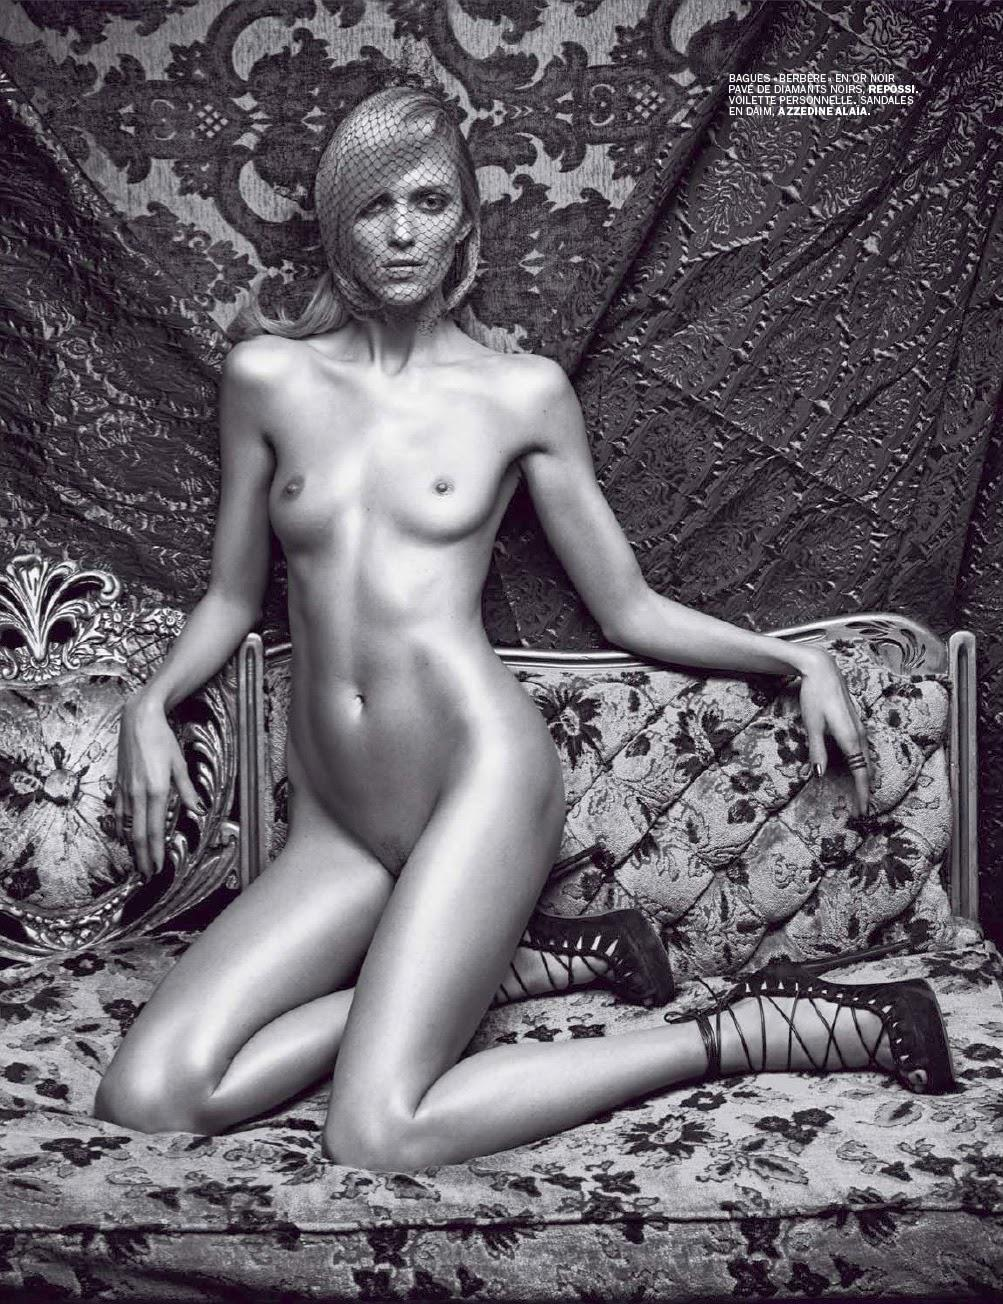 Anja Rubik Nude Photos and Videos naked (66 photos)